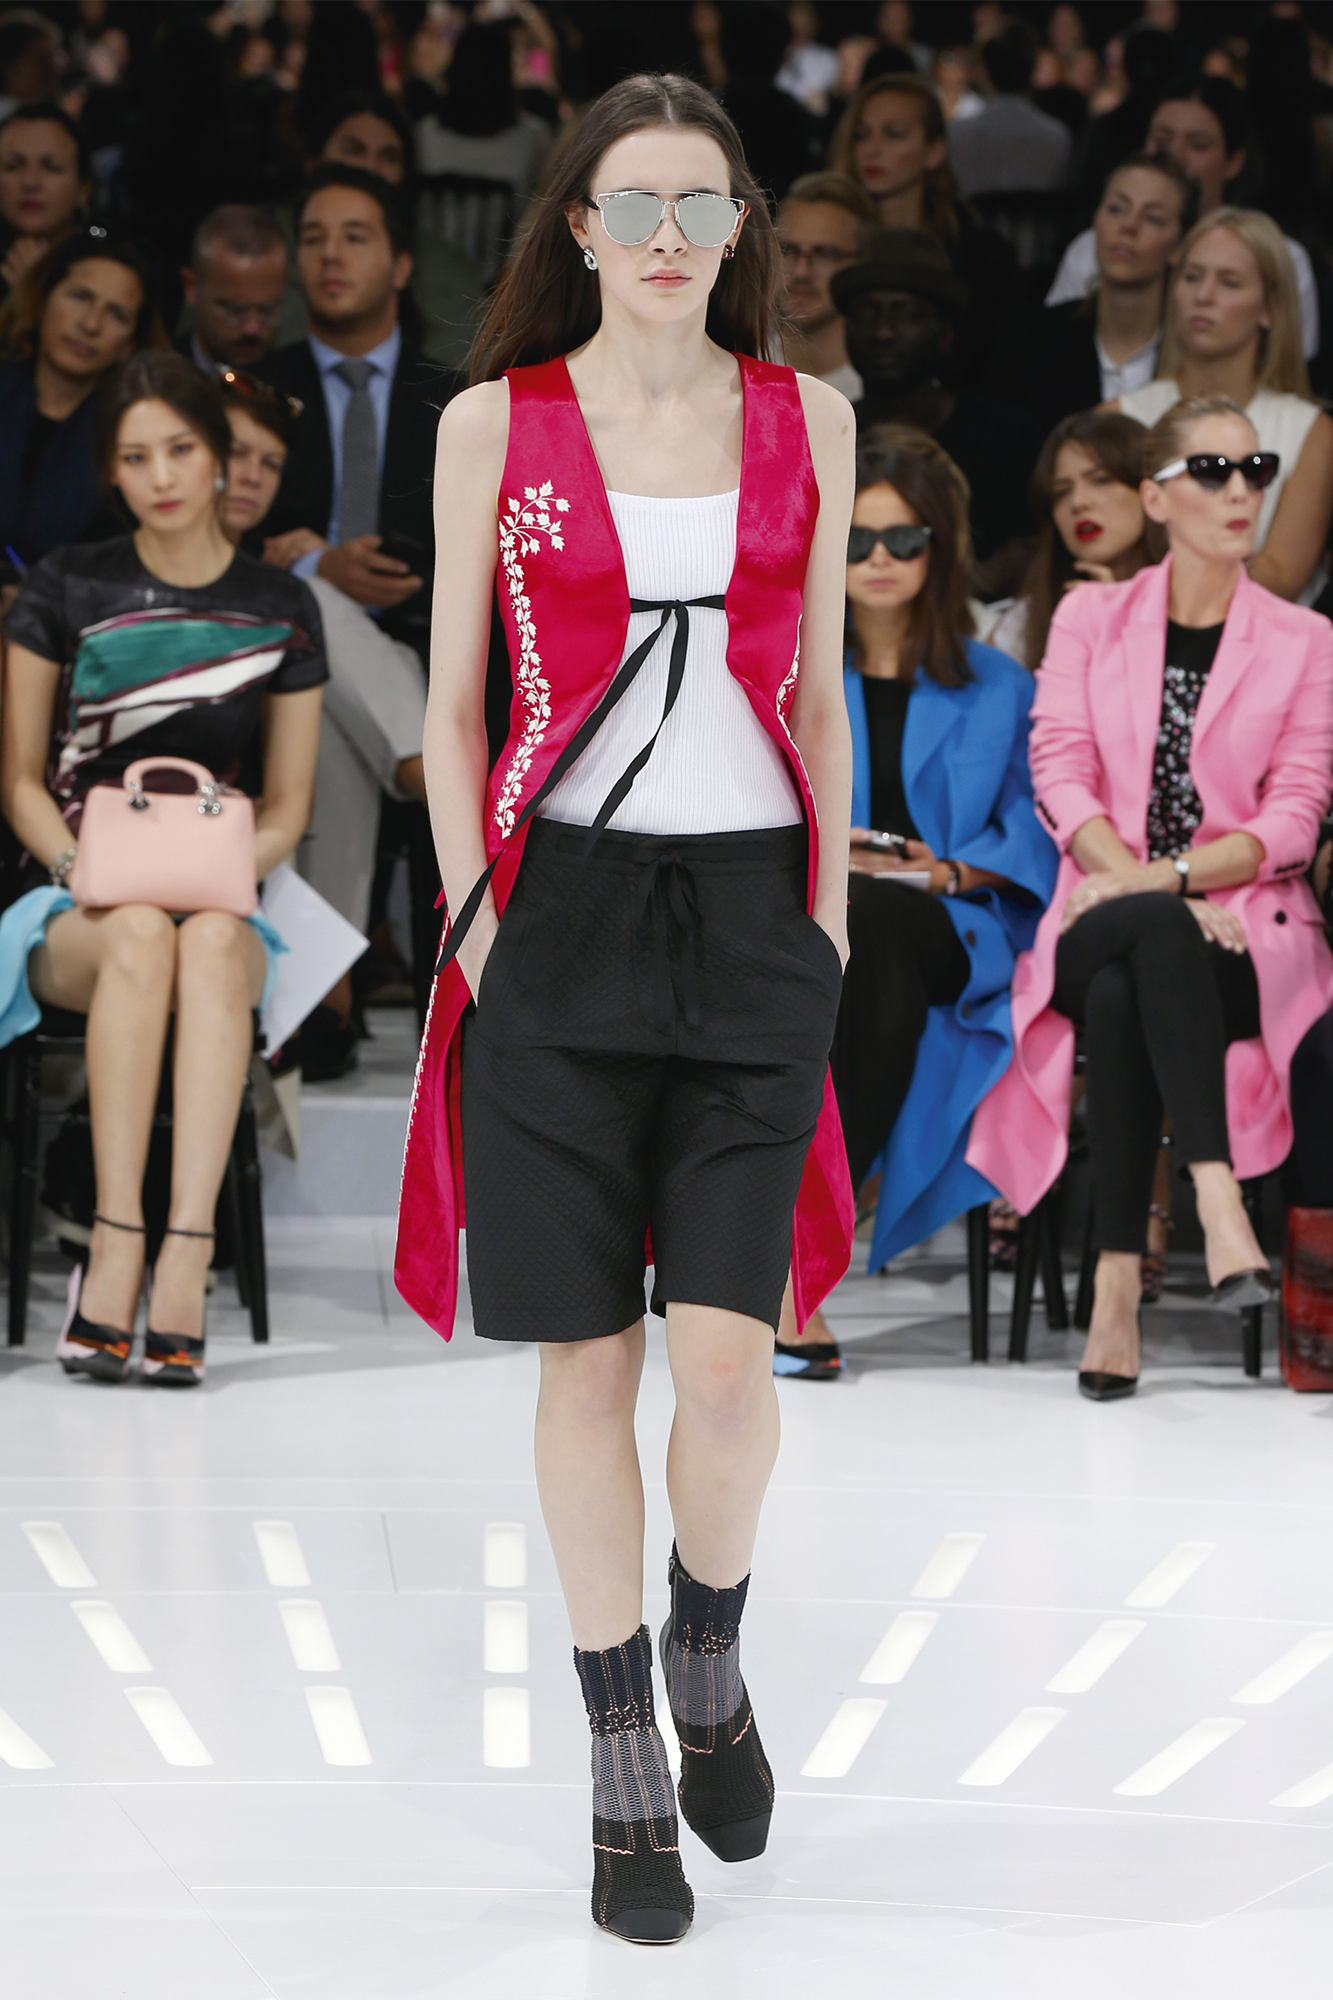 Christian Dior Haute Couture Spring-Summer Ready To Wear Dresses & Accessories Collection 2015-16 (37)